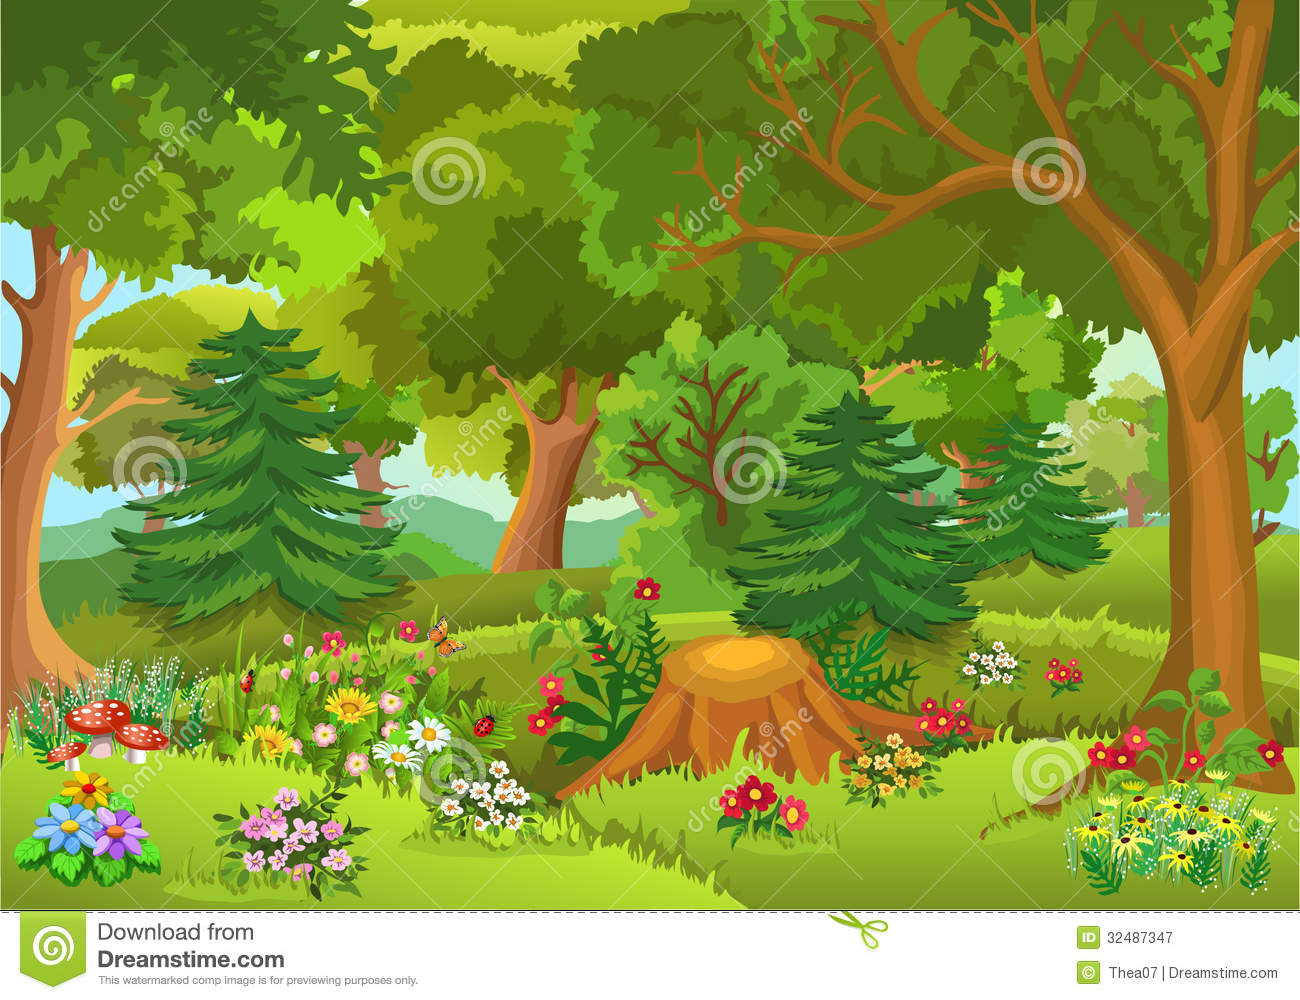 Free Clip Art of Forests.